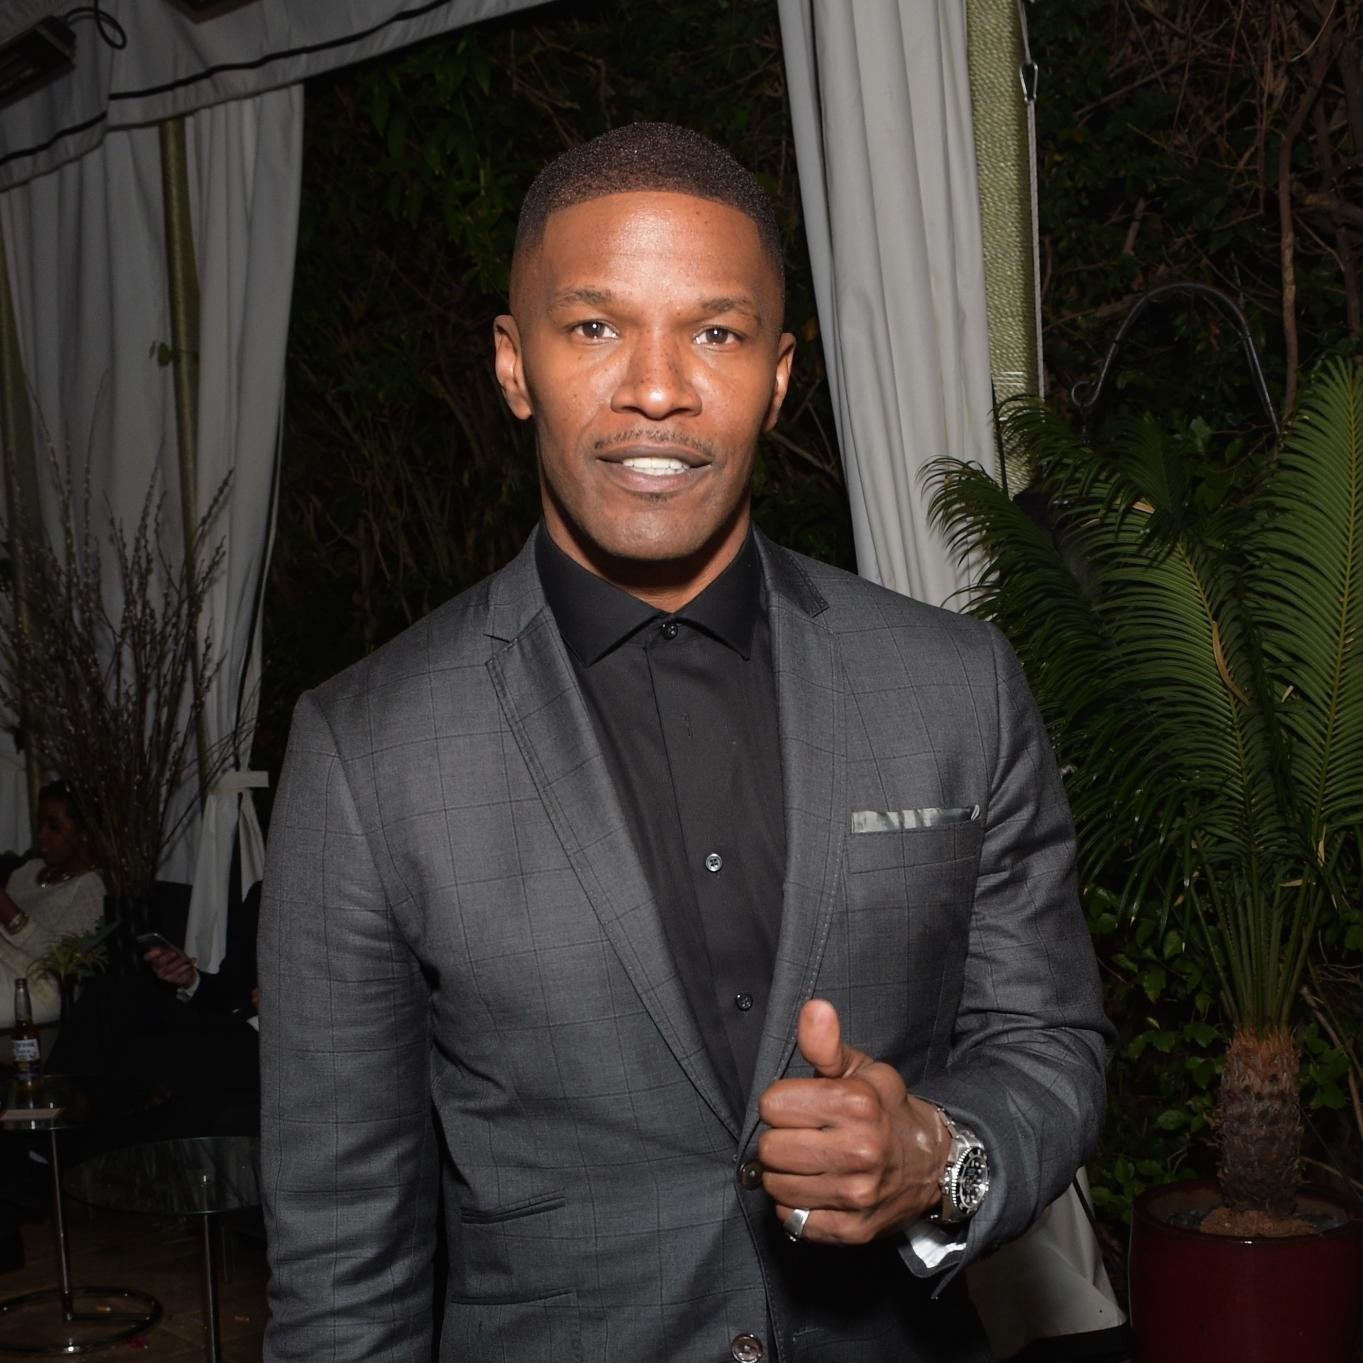 Jamie Foxx to Present at the 2016 Golden Globes